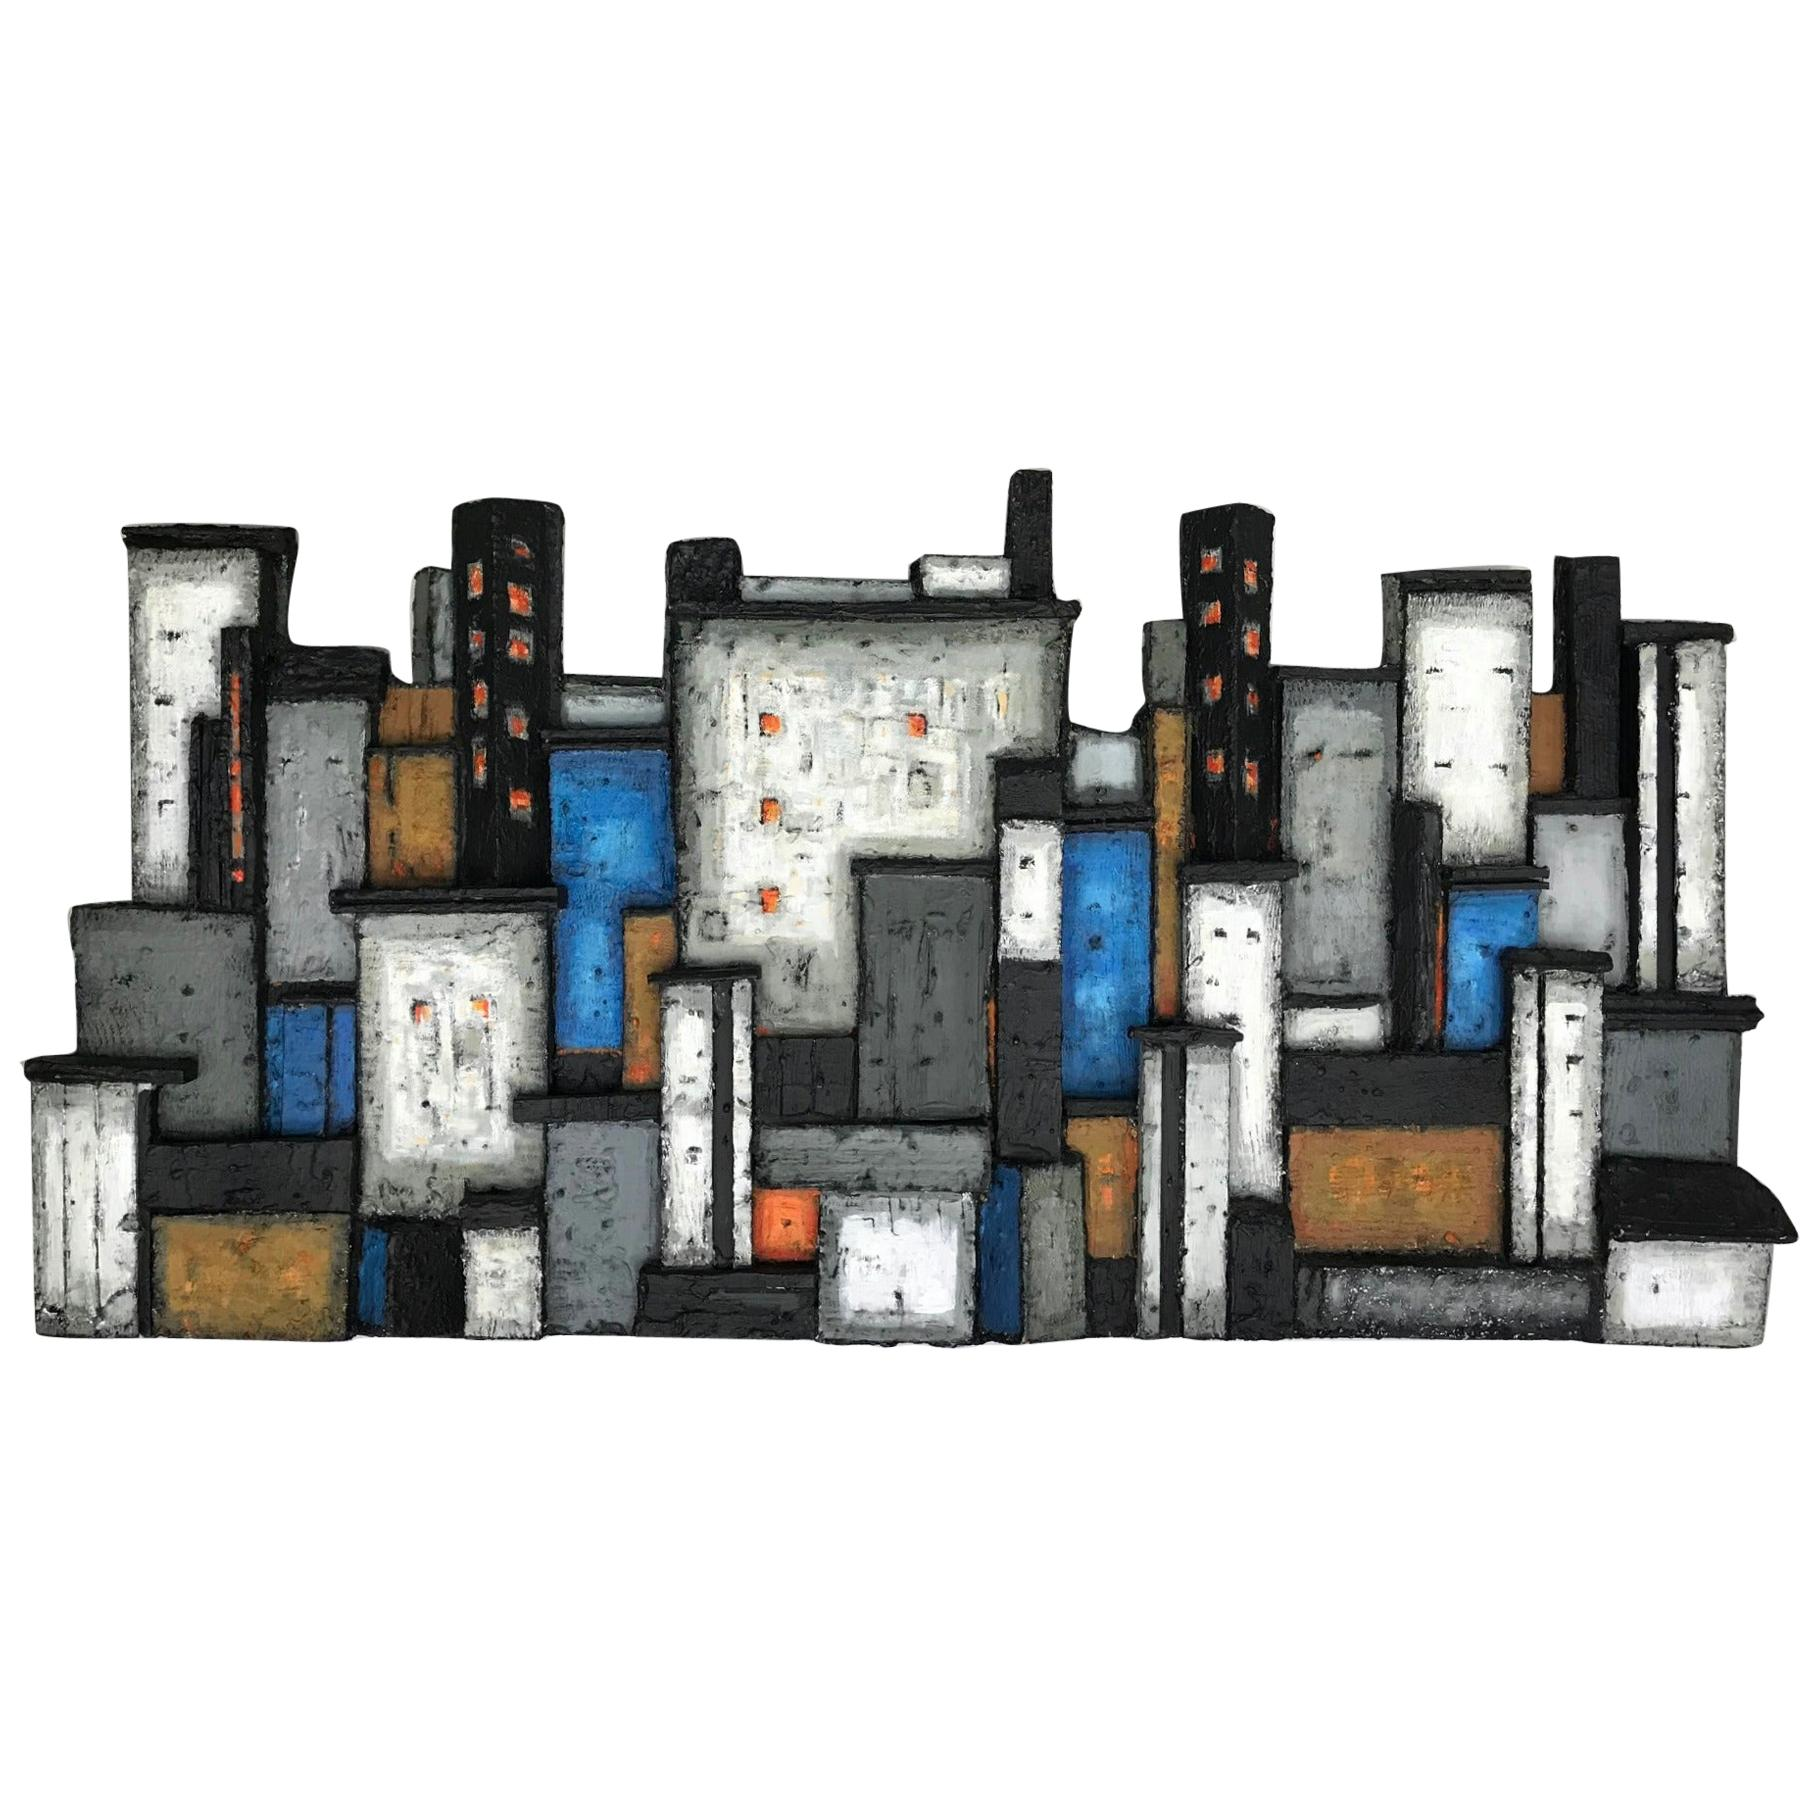 Brutalist Cityscape Wall Mounted Art Relief in Wood by Dorrit Kahler